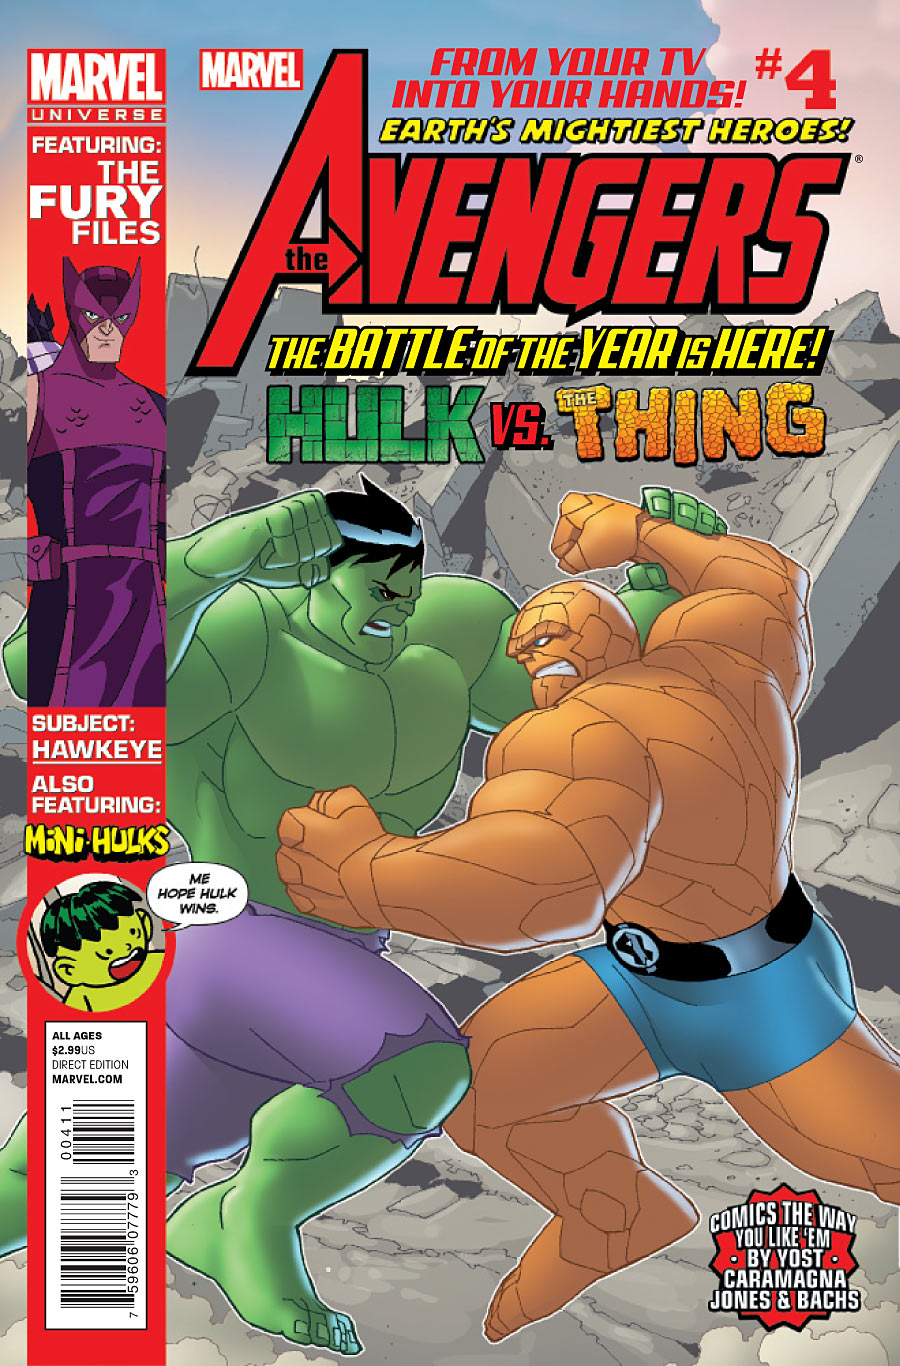 Marvel Universe: Avengers - Earth's Mightiest Heroes Vol 1 4